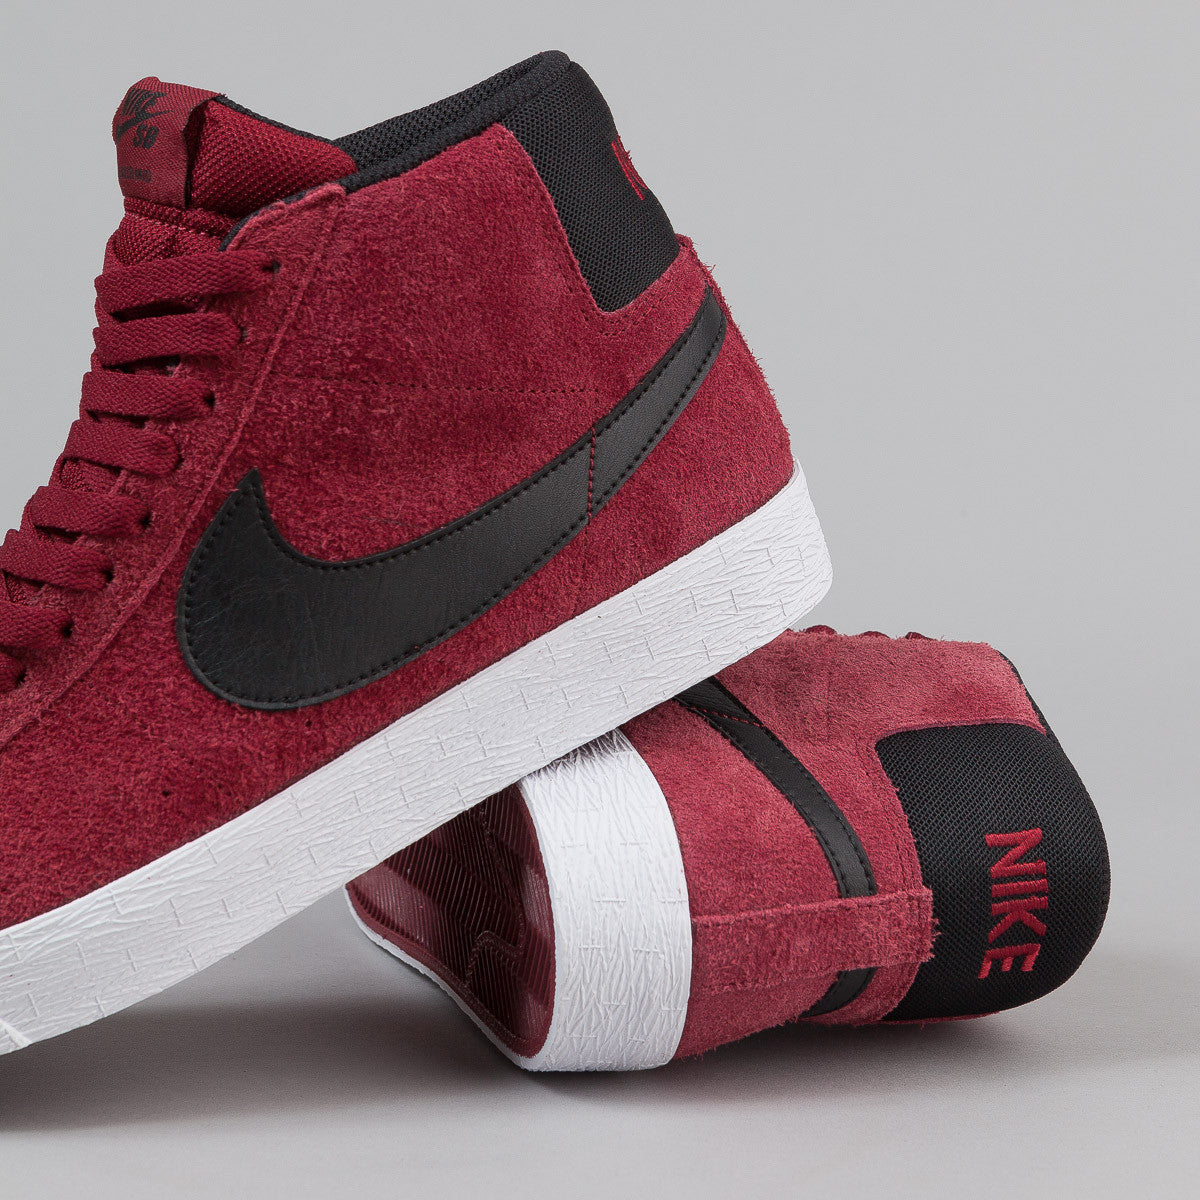 Nike SB Blazer Premium SE Shoes - Team Red / Black - White